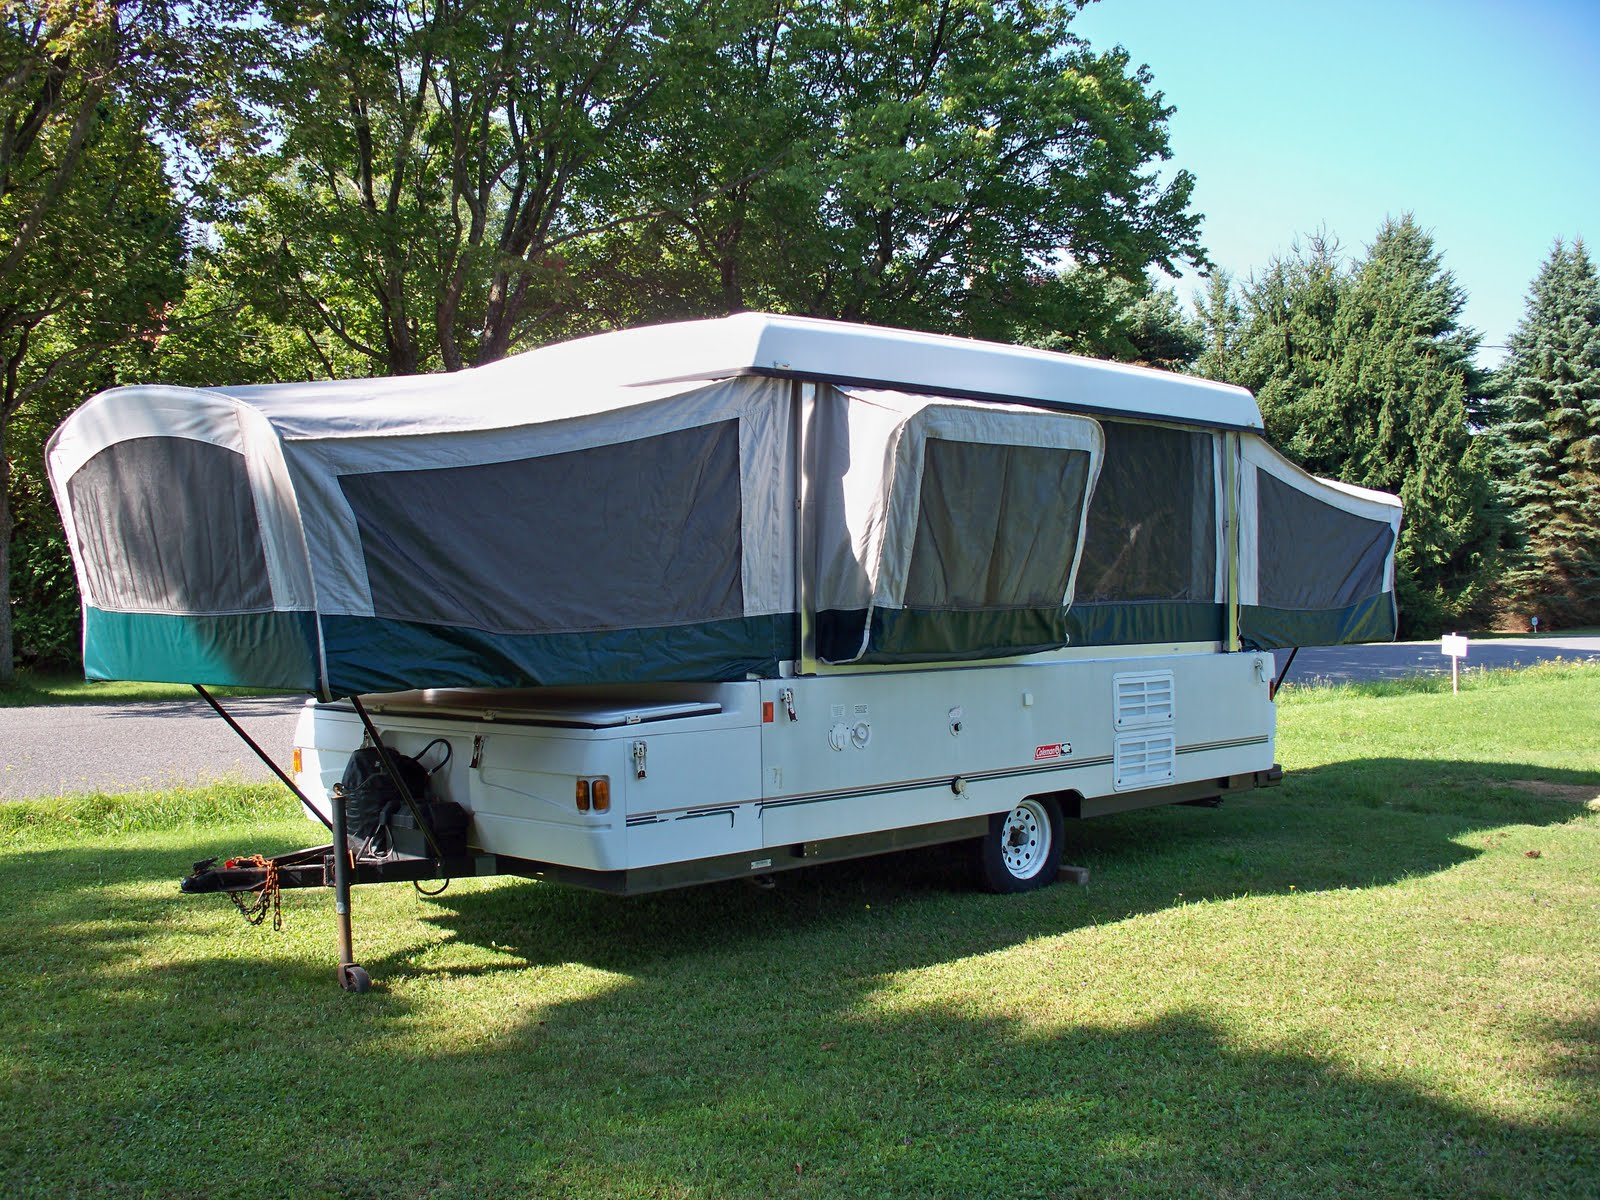 jayco pop up trailer wiring diagram images wiring diagram as well palomino c er trailer wiring diagram on